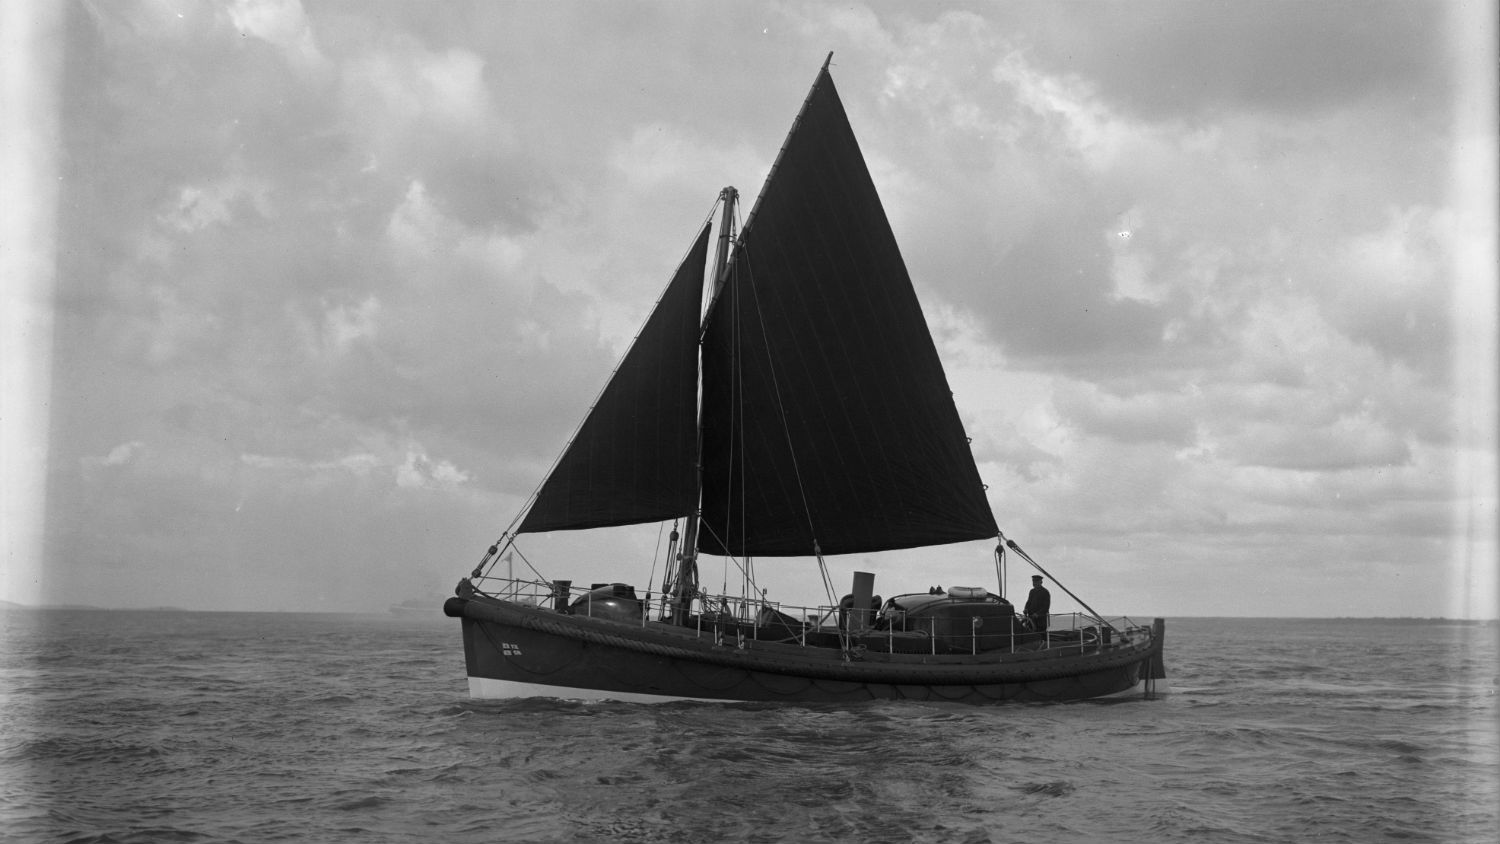 Black and white image of Longhope lifeboat, Thomas McCunn, while on trials